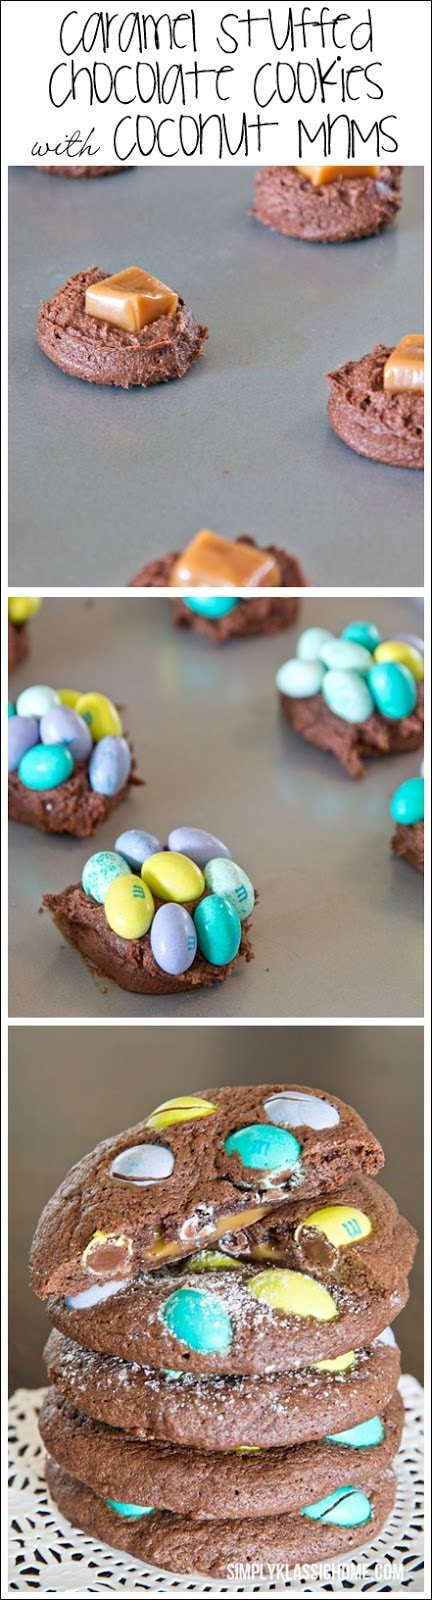 A sheet pan with chocolate cookie dough and M&Ms